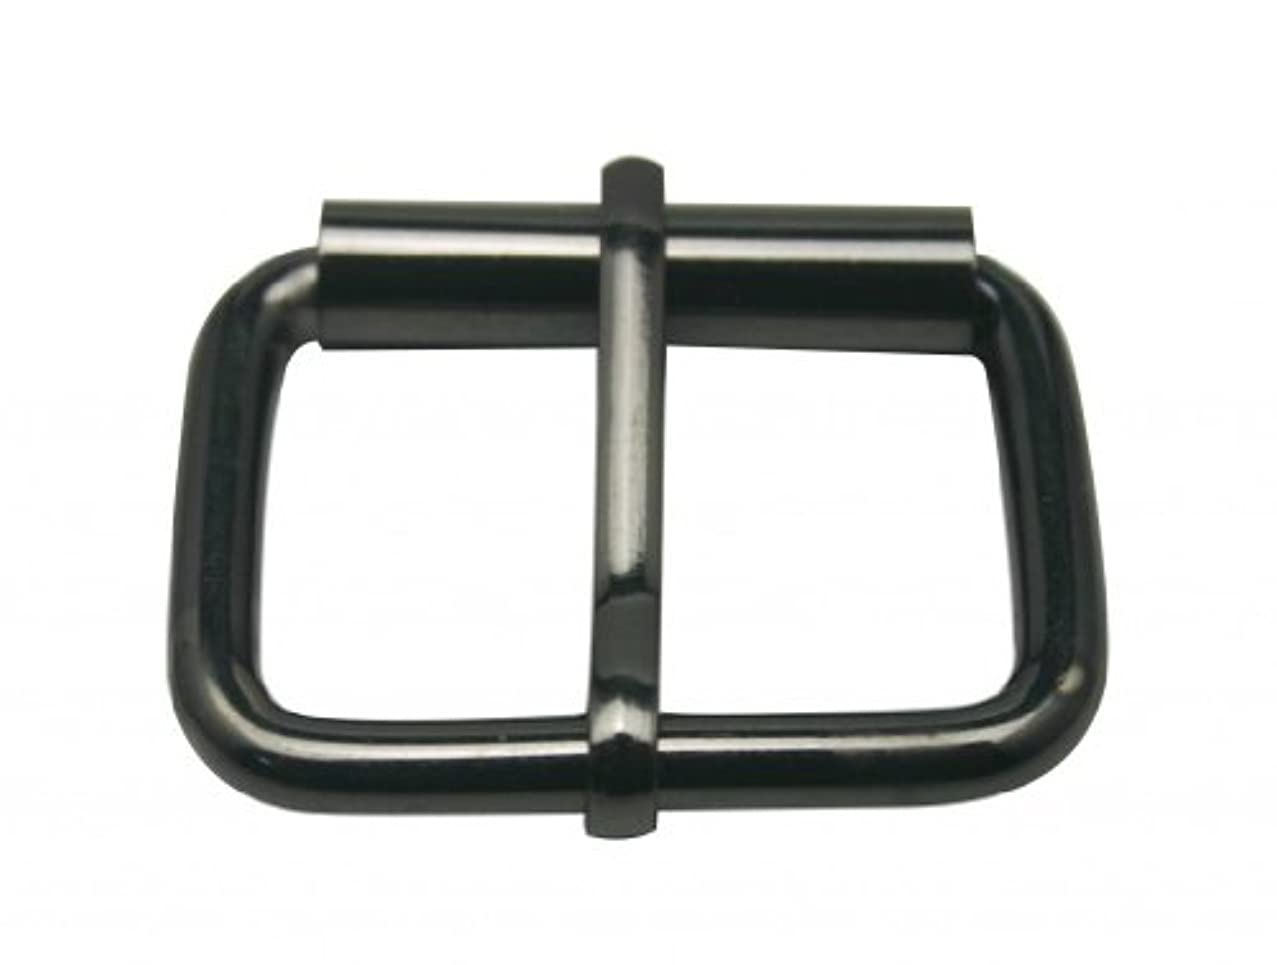 Generic Metal Gun Black Rectangle Buckle with Slider Bar 1.5